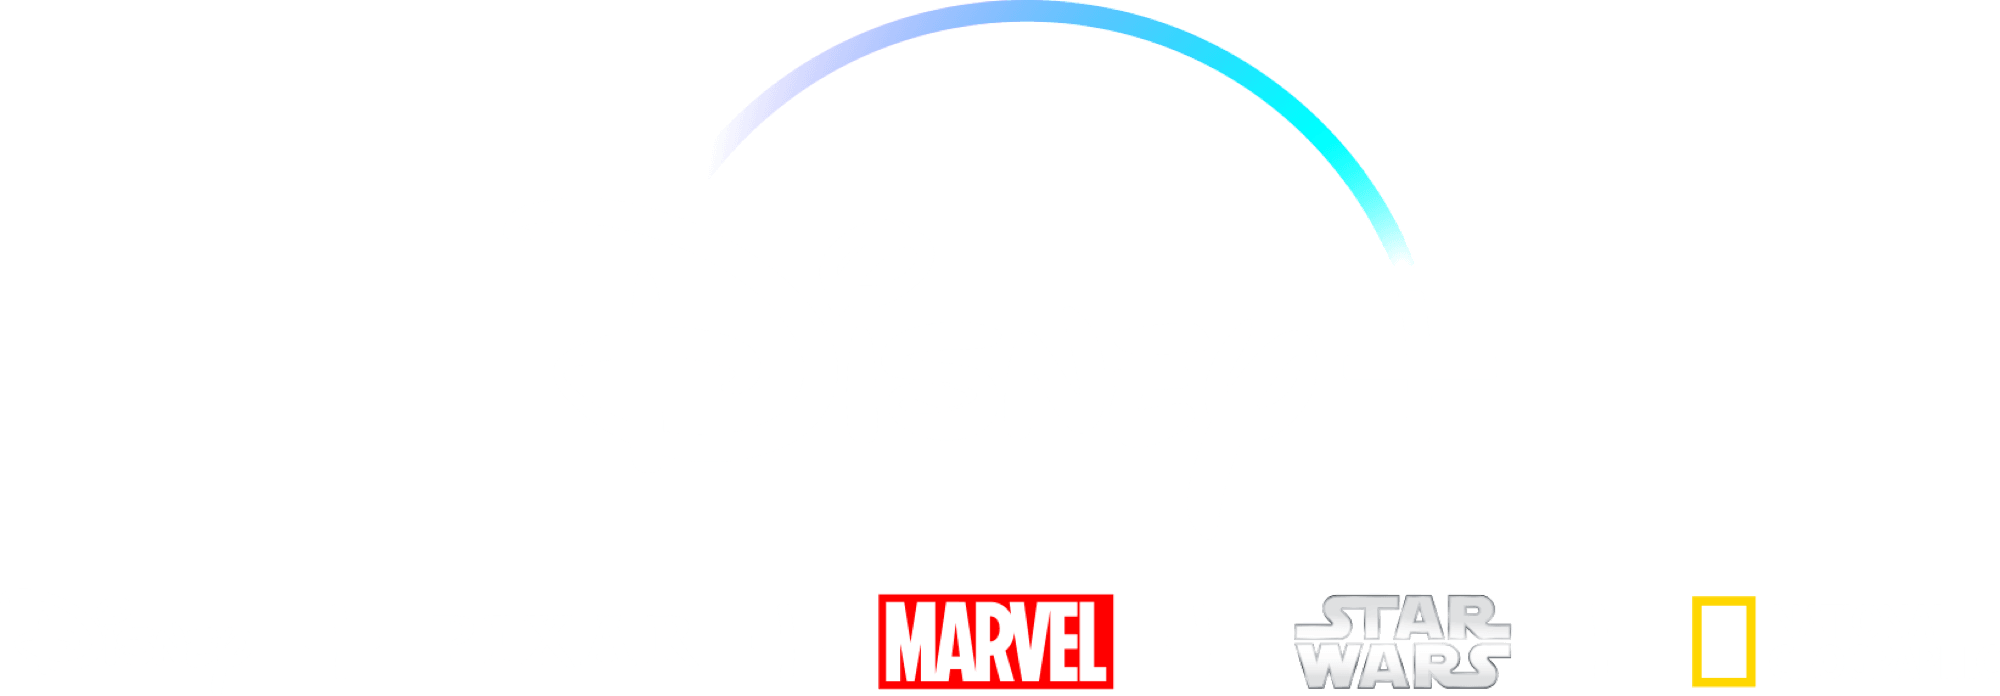 Disney+ logo med Disney, Pixar, Marvel, Star Wars og National Geographic logoer nedenunder